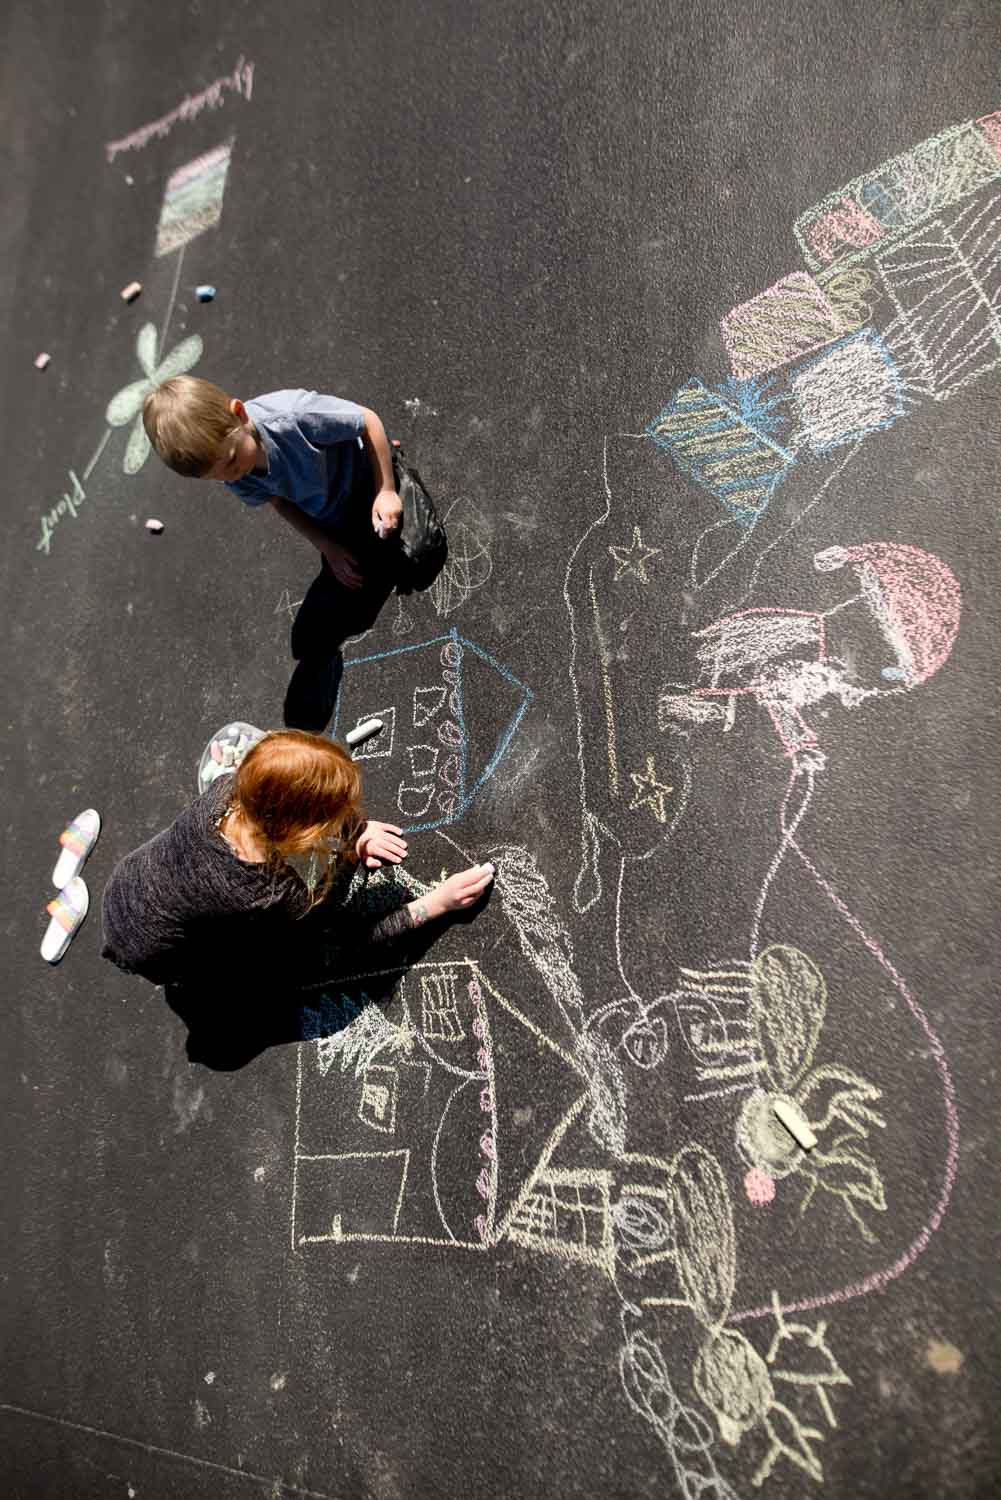 Big art project using shadow tracing as inspiration for kids